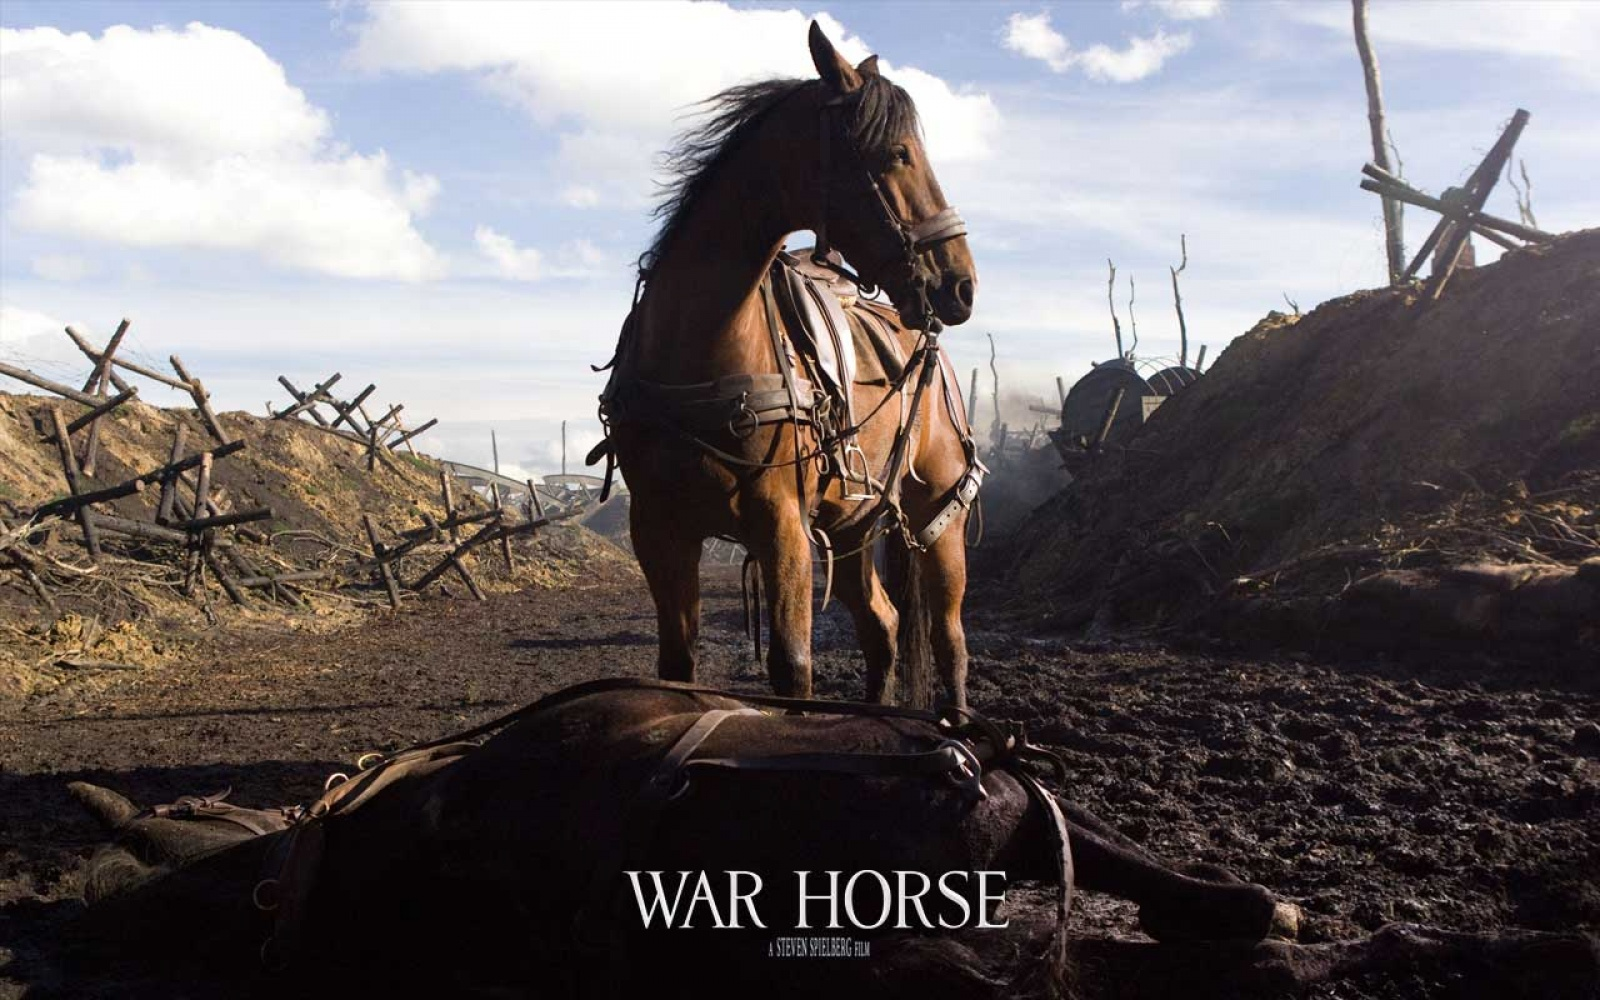 war horse movie analysis Amazoncom: war horse: jeremy irvine, peter mullan, emily watson, niels arestrup, david thewlis, tom hiddleston a great war movie, but we as people really abused the war horses published 12 days ago laurie schlessman 50 out of 5 stars five stars great movie.